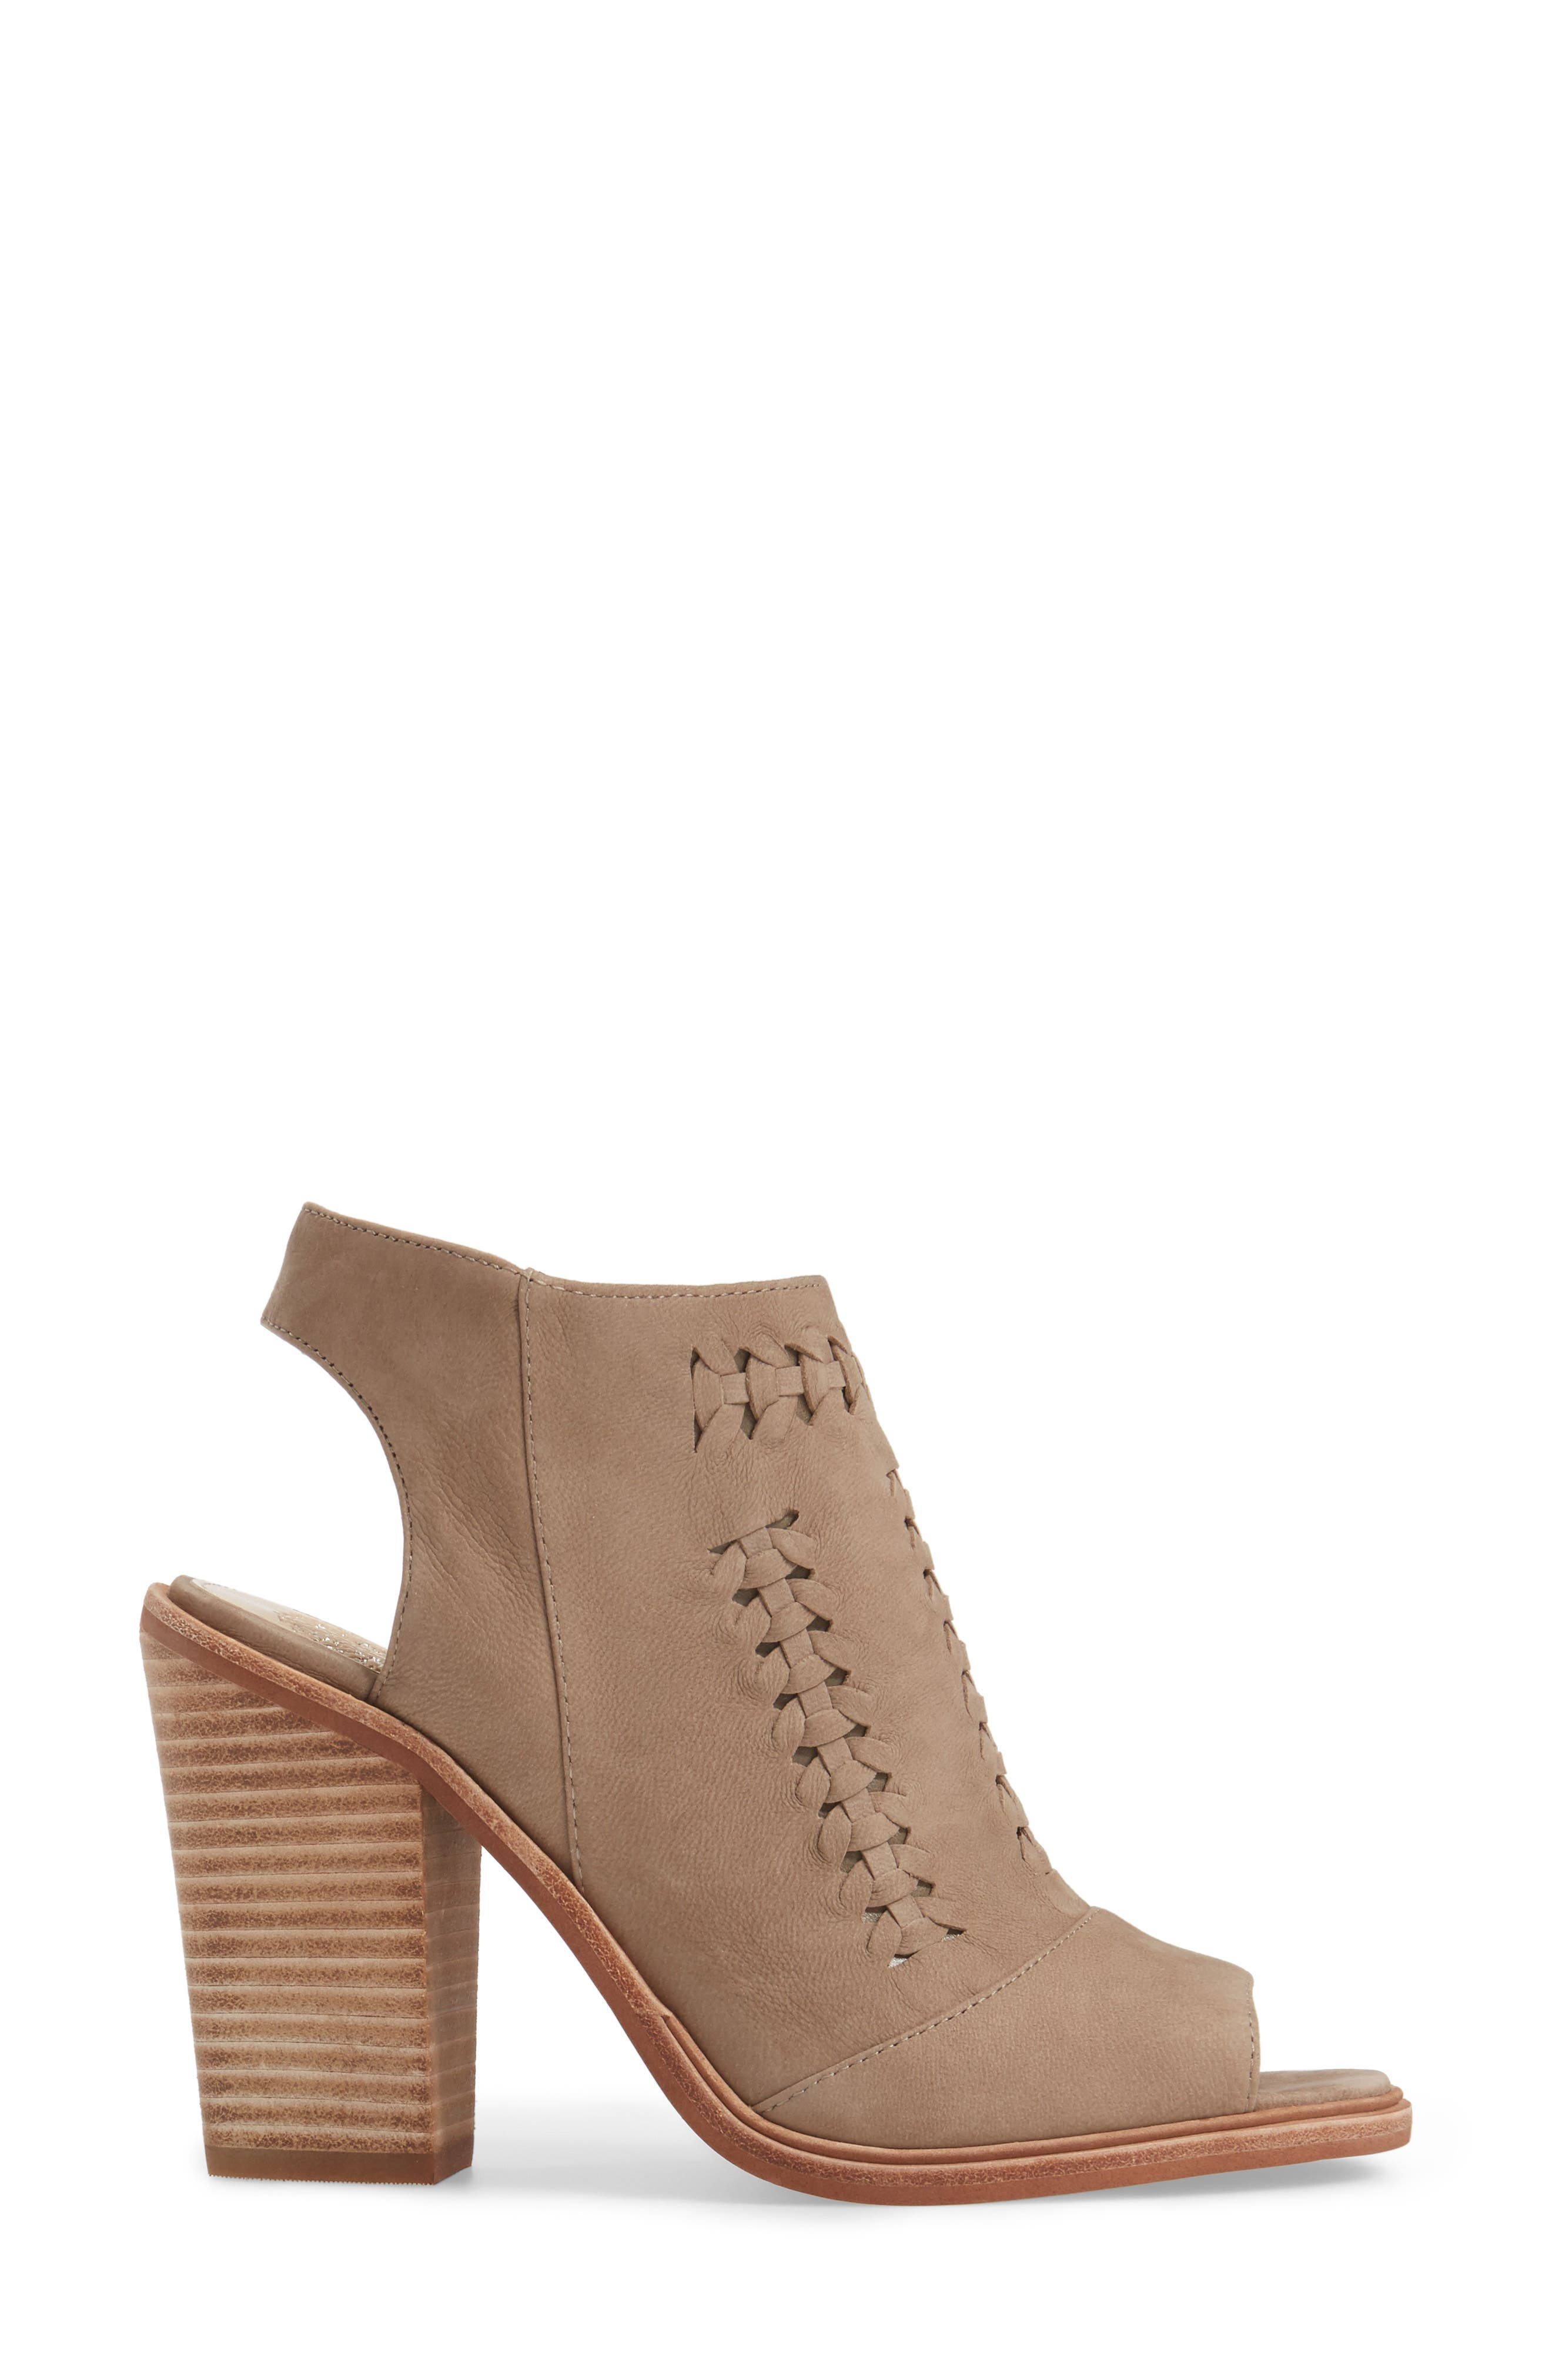 Alternate Image 3  - Vince Camuto Katri Woven Bootie (Women) (Nordstrom Exclusive)